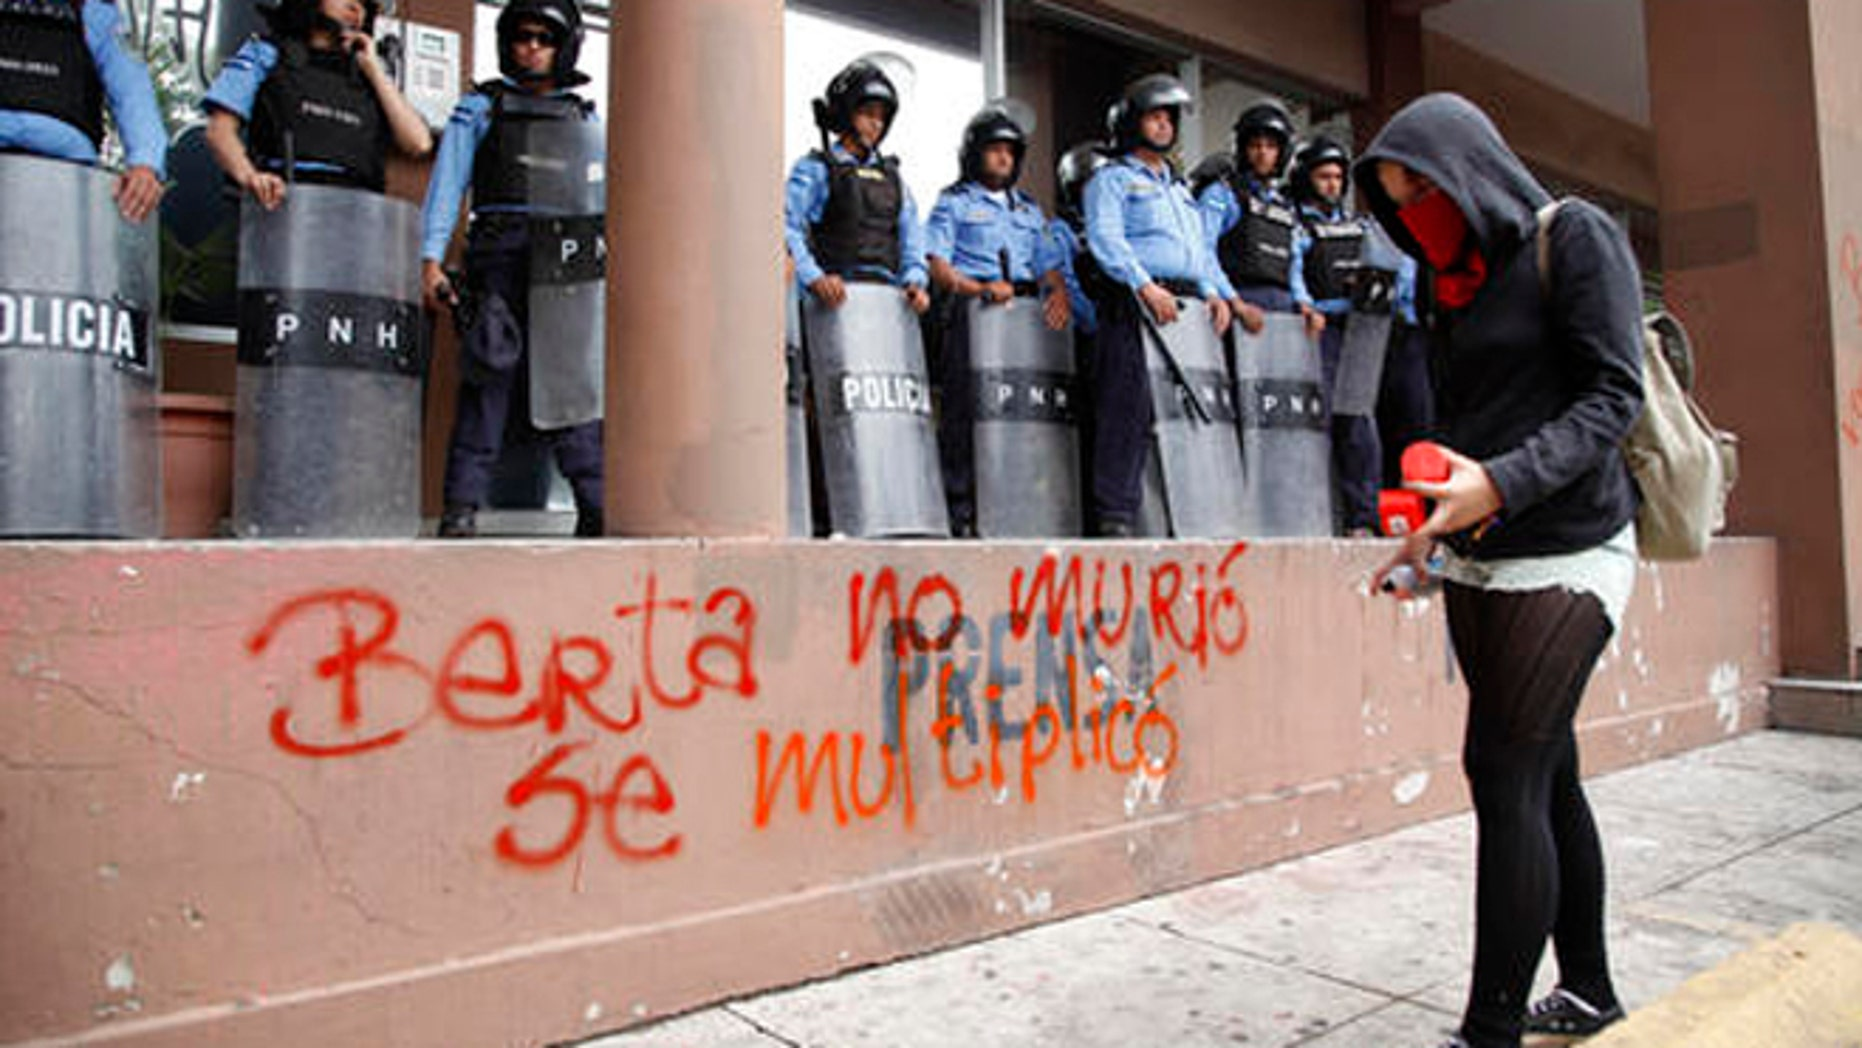 "A protester writes with spray paint ""Berta did not die, she multiplied"" in front of riot police guarding the attorney general's office in Tegucigalpa, Honduras, Thursday, Oct. 20, 2016. Members of the Civic Council of Popular and Indigenous Organizations of Honduras (COPINH) and people belonging to the Garifuna people protested to demand justice over the March 2016 murder of Honduran indigenous leader and environmentalist Berta Caceres and to halt construction of the Agua Zarca dam, which would displace many of the indigenous Lenca people. (AP Photo/Fernando Antonio)"